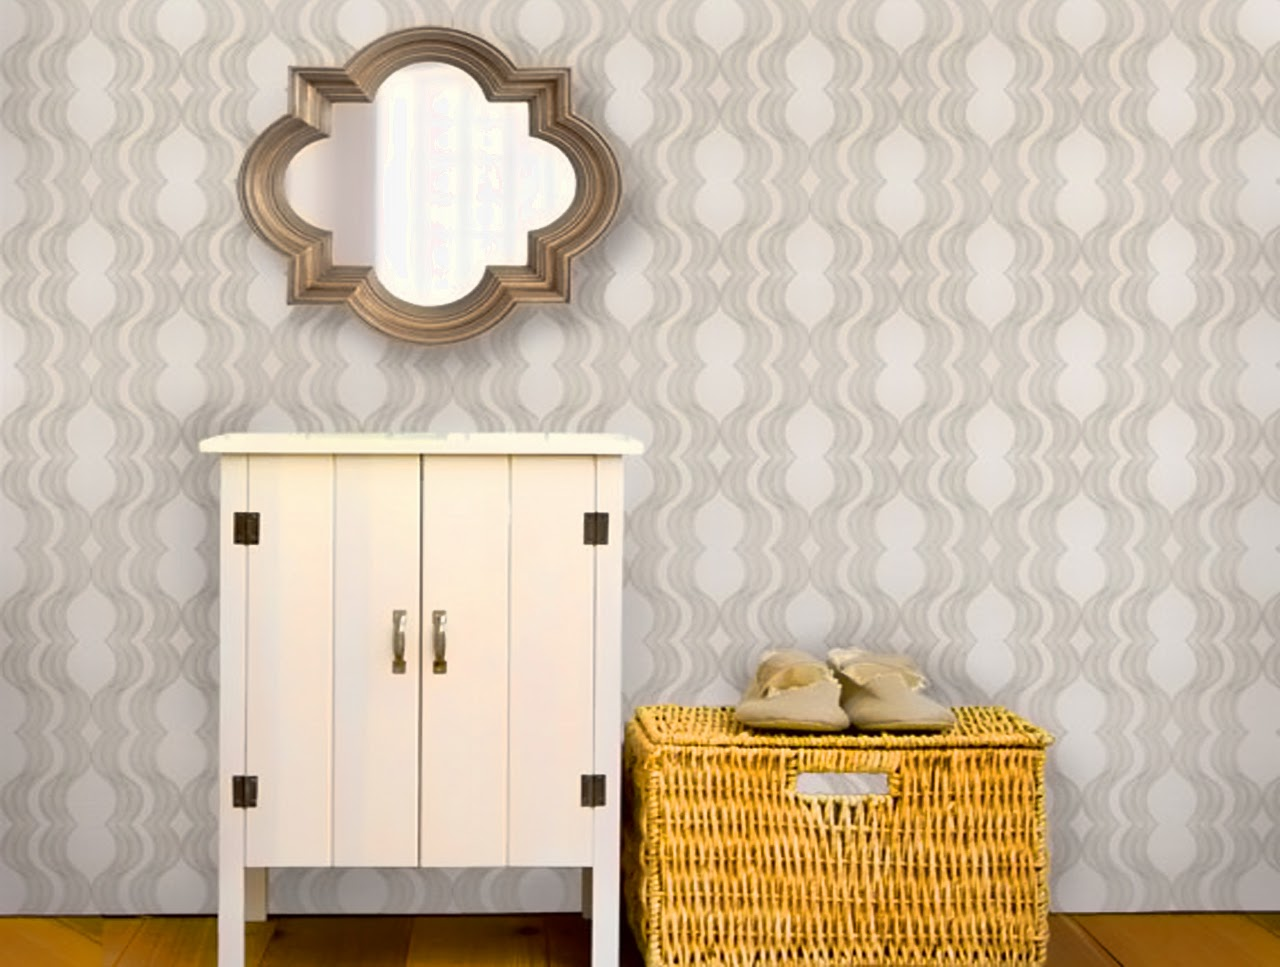 Sherwin williams wallpaper sherwin williams wallpaper sherwin williams 1280x967